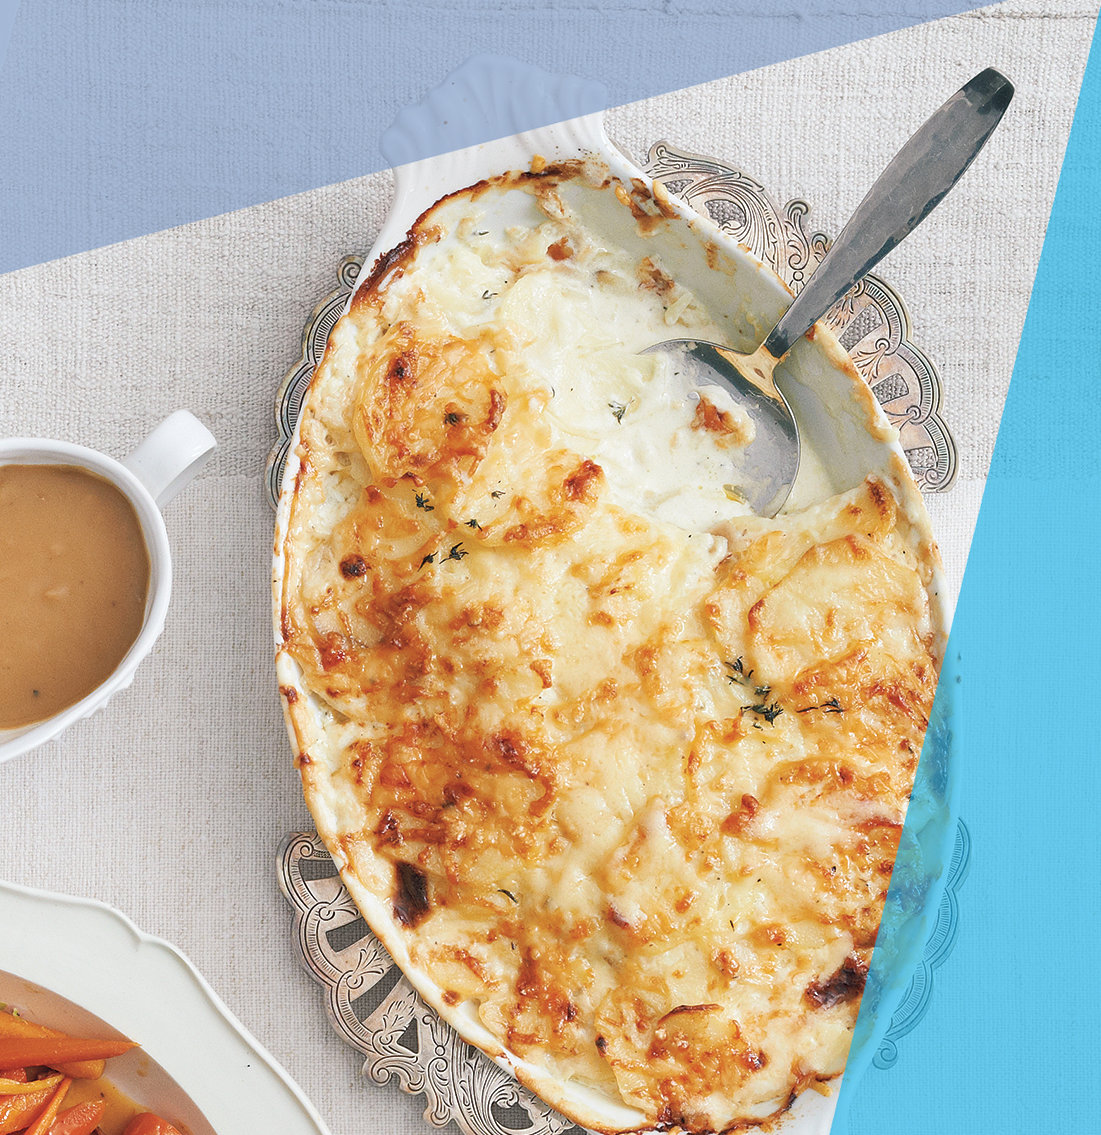 The Go-To Guide to Baking the Best Homemade Scalloped Potatoes